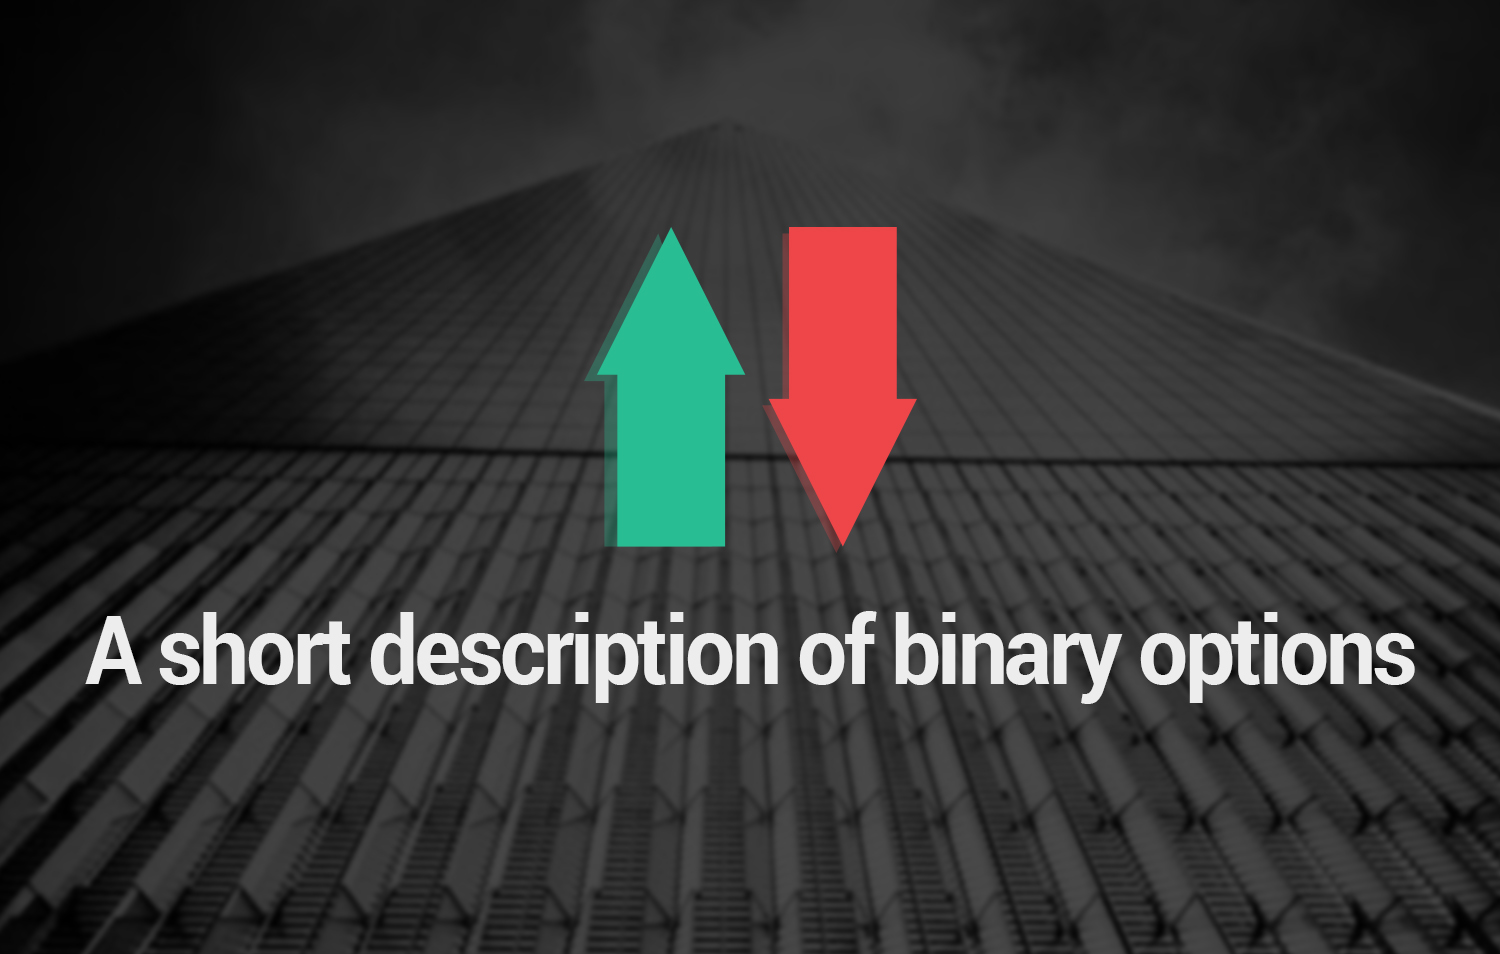 A short description of binary options